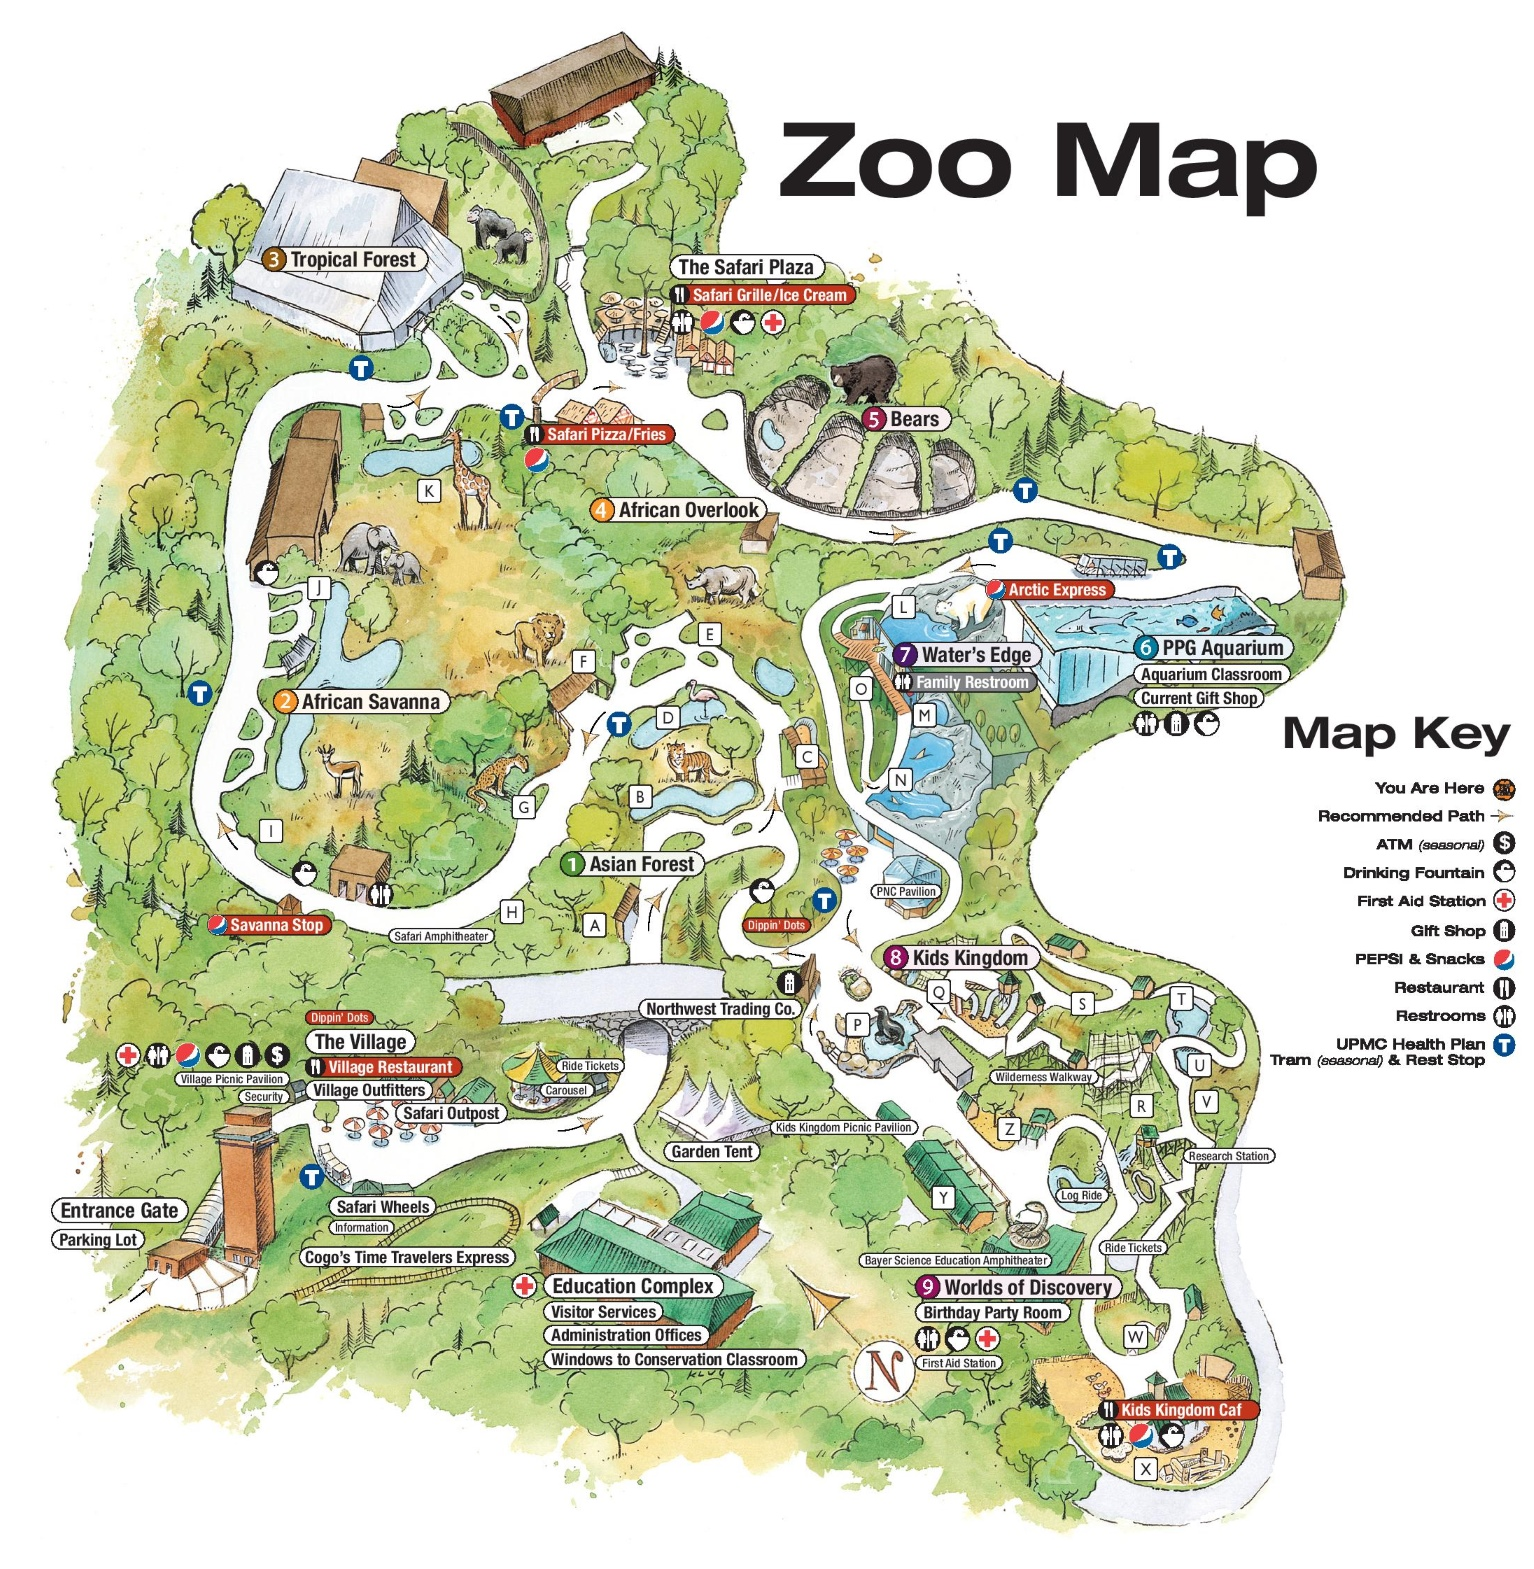 Pittsburgh Zoo Map Pittsburgh Zoo map Pittsburgh Zoo Map